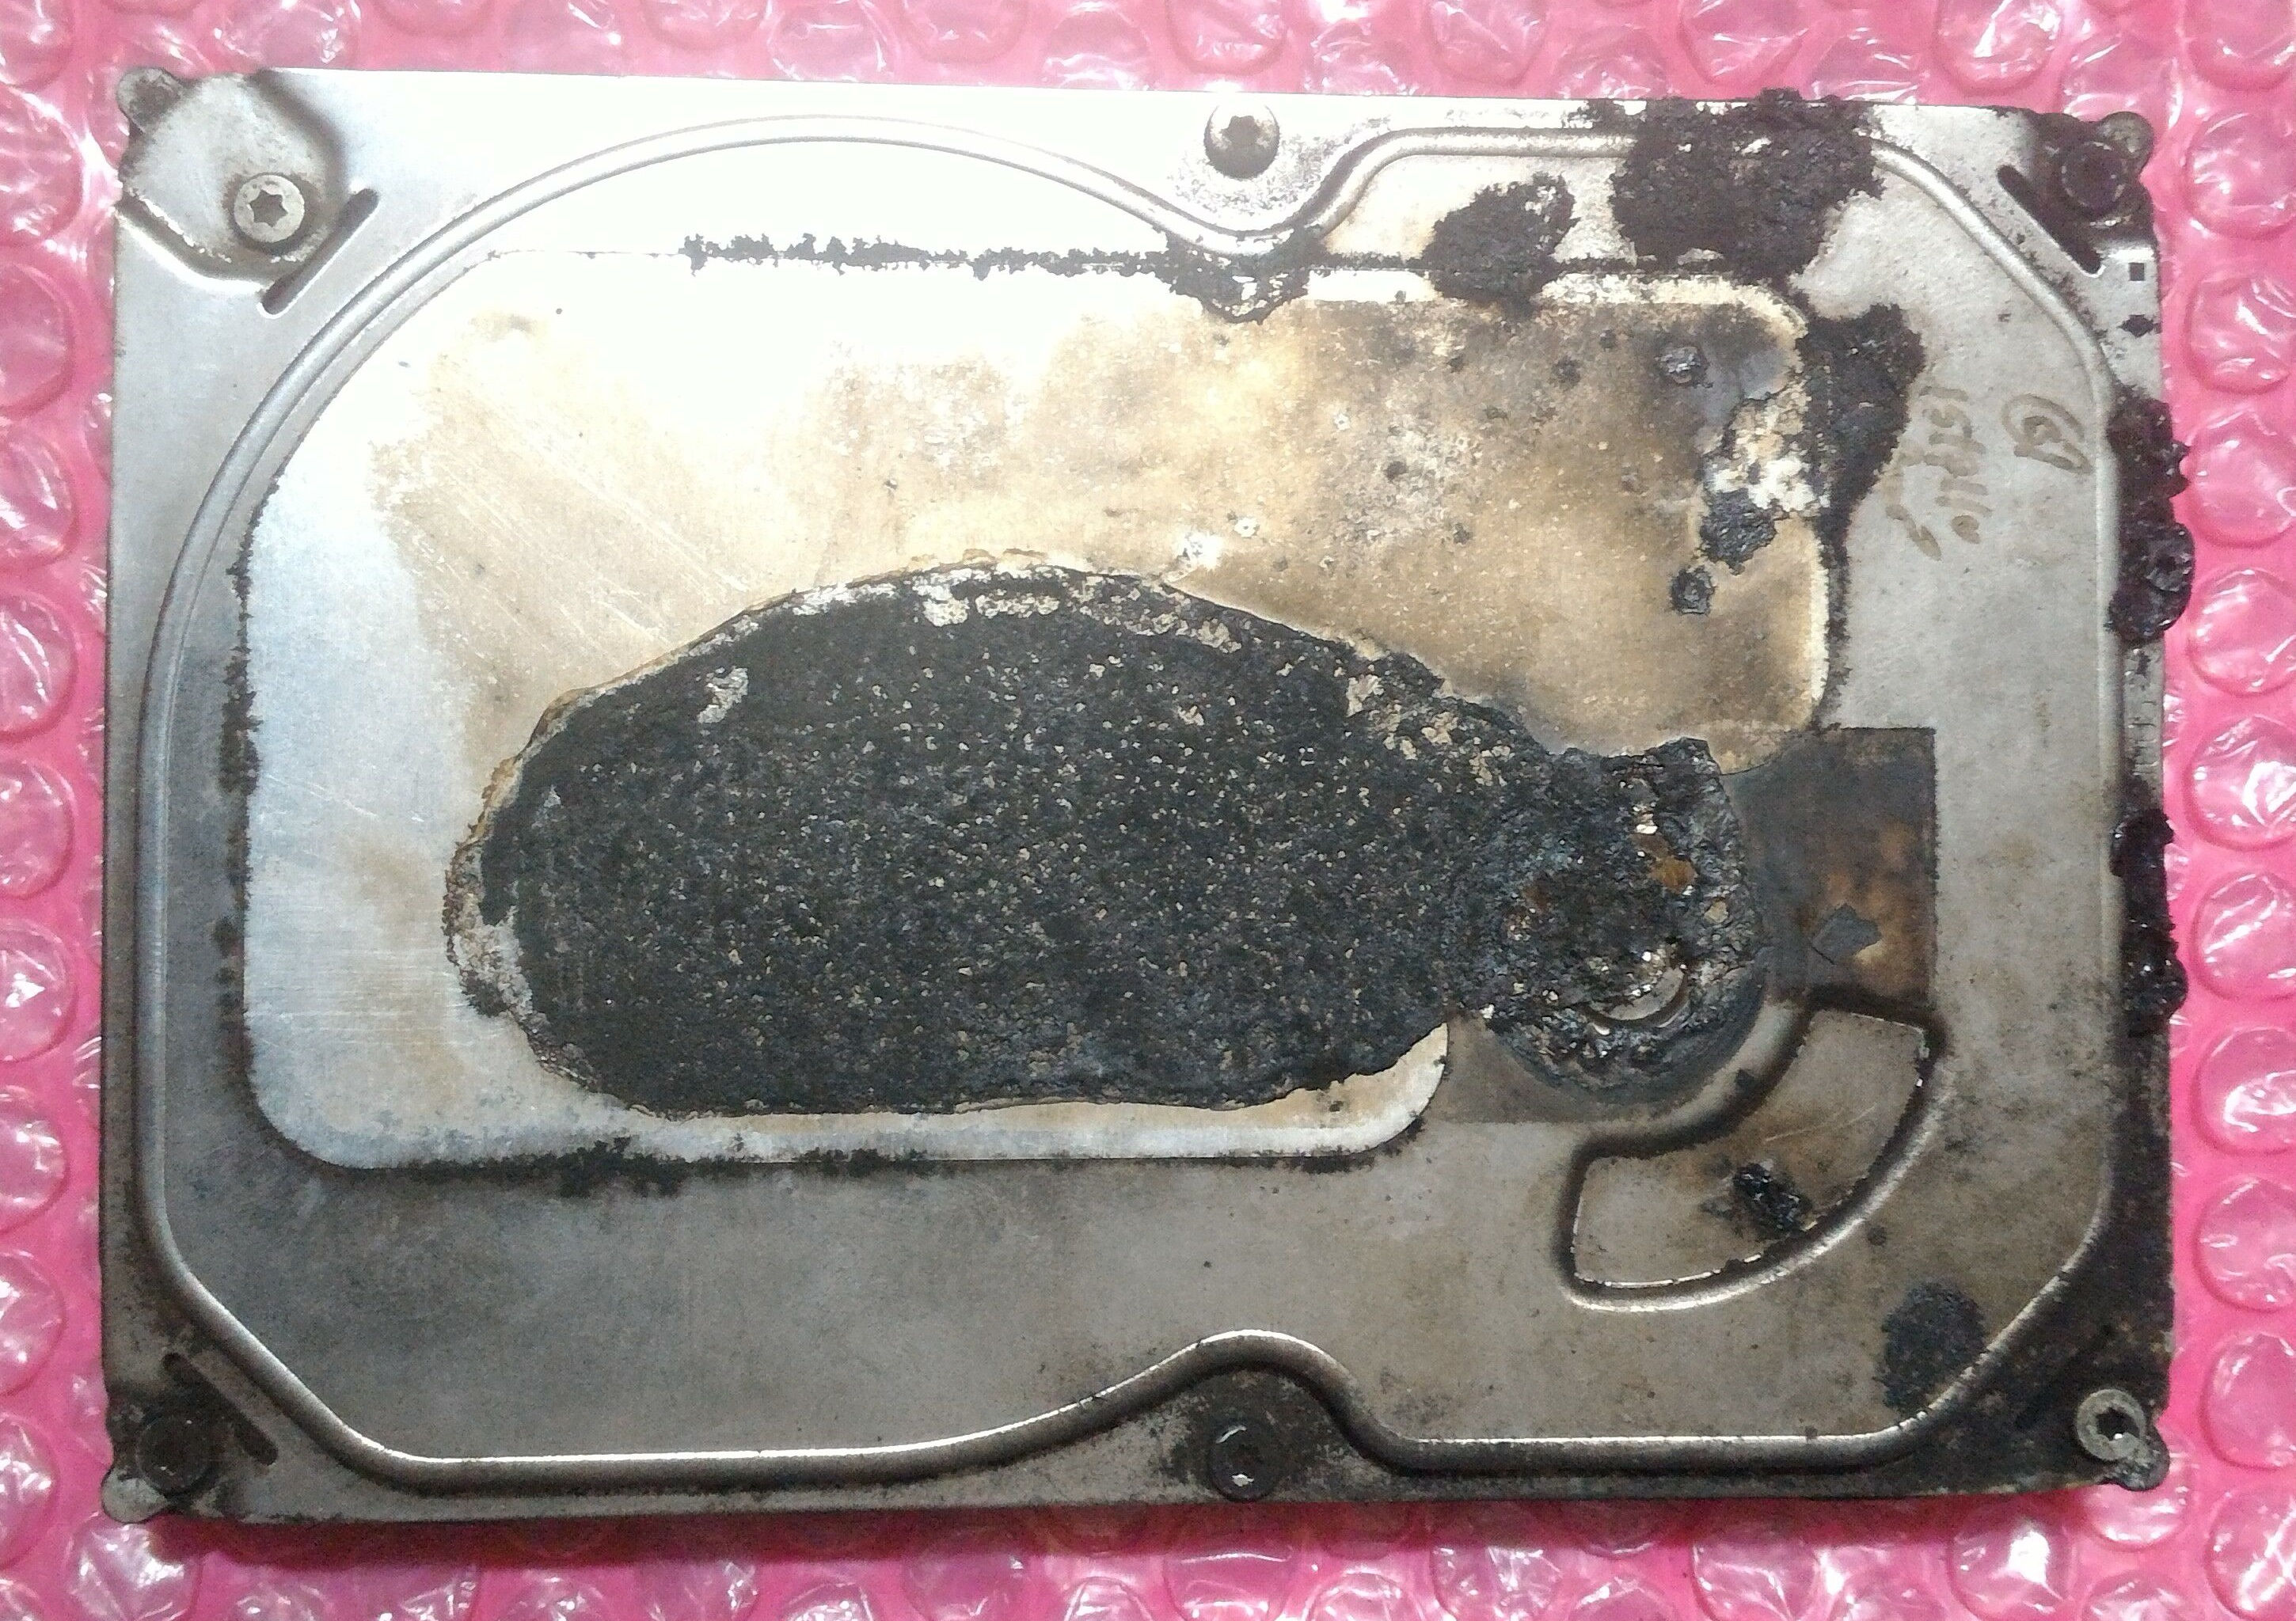 Burnt-fire-damaged-hard-drive-frontside